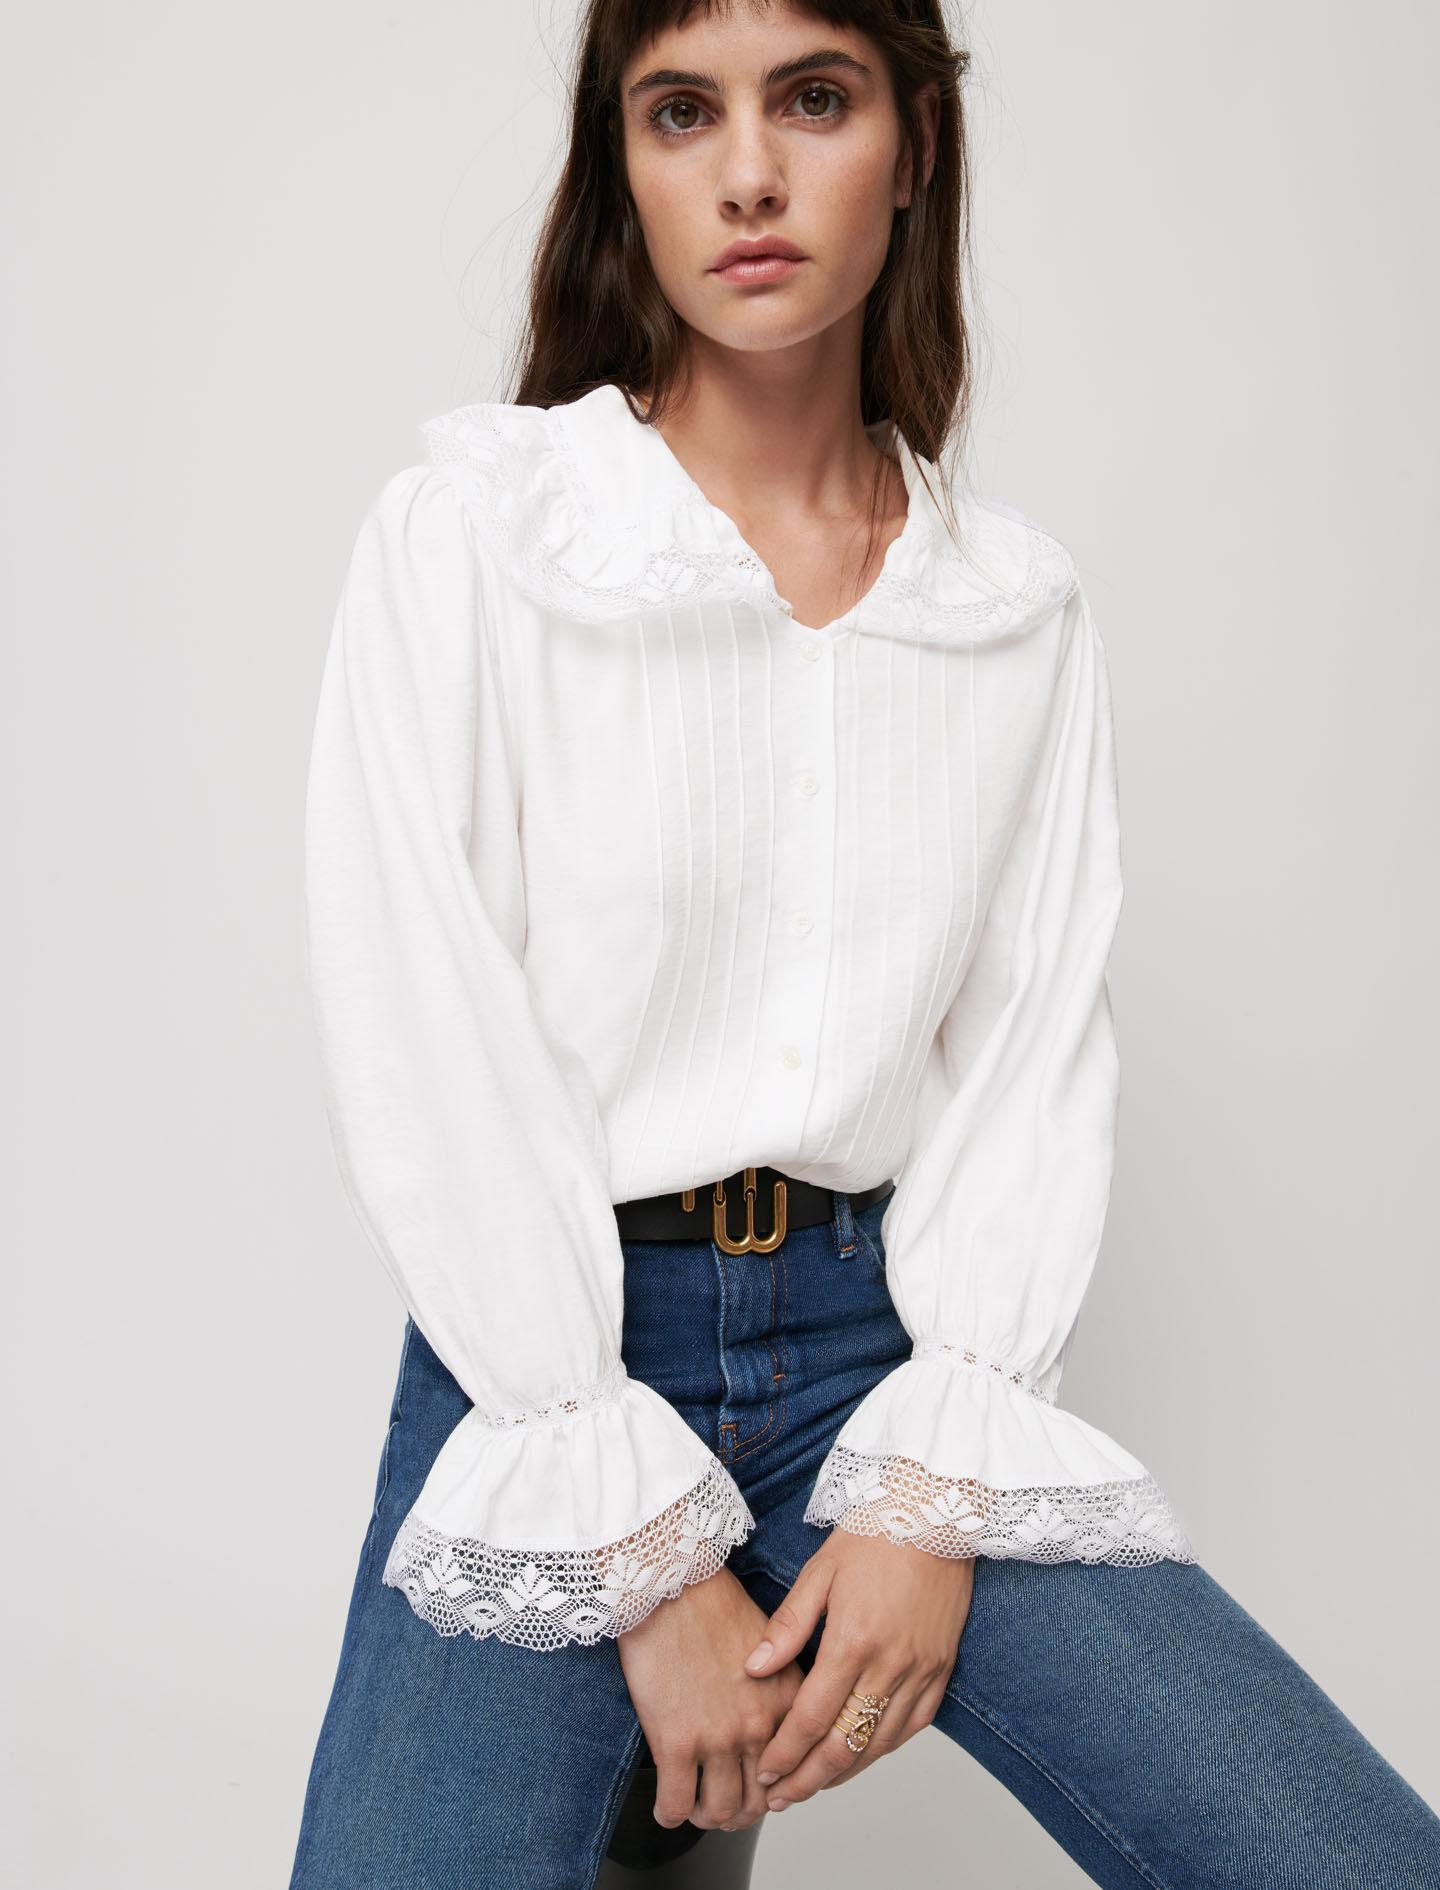 VEIL AND LACE SHIRT